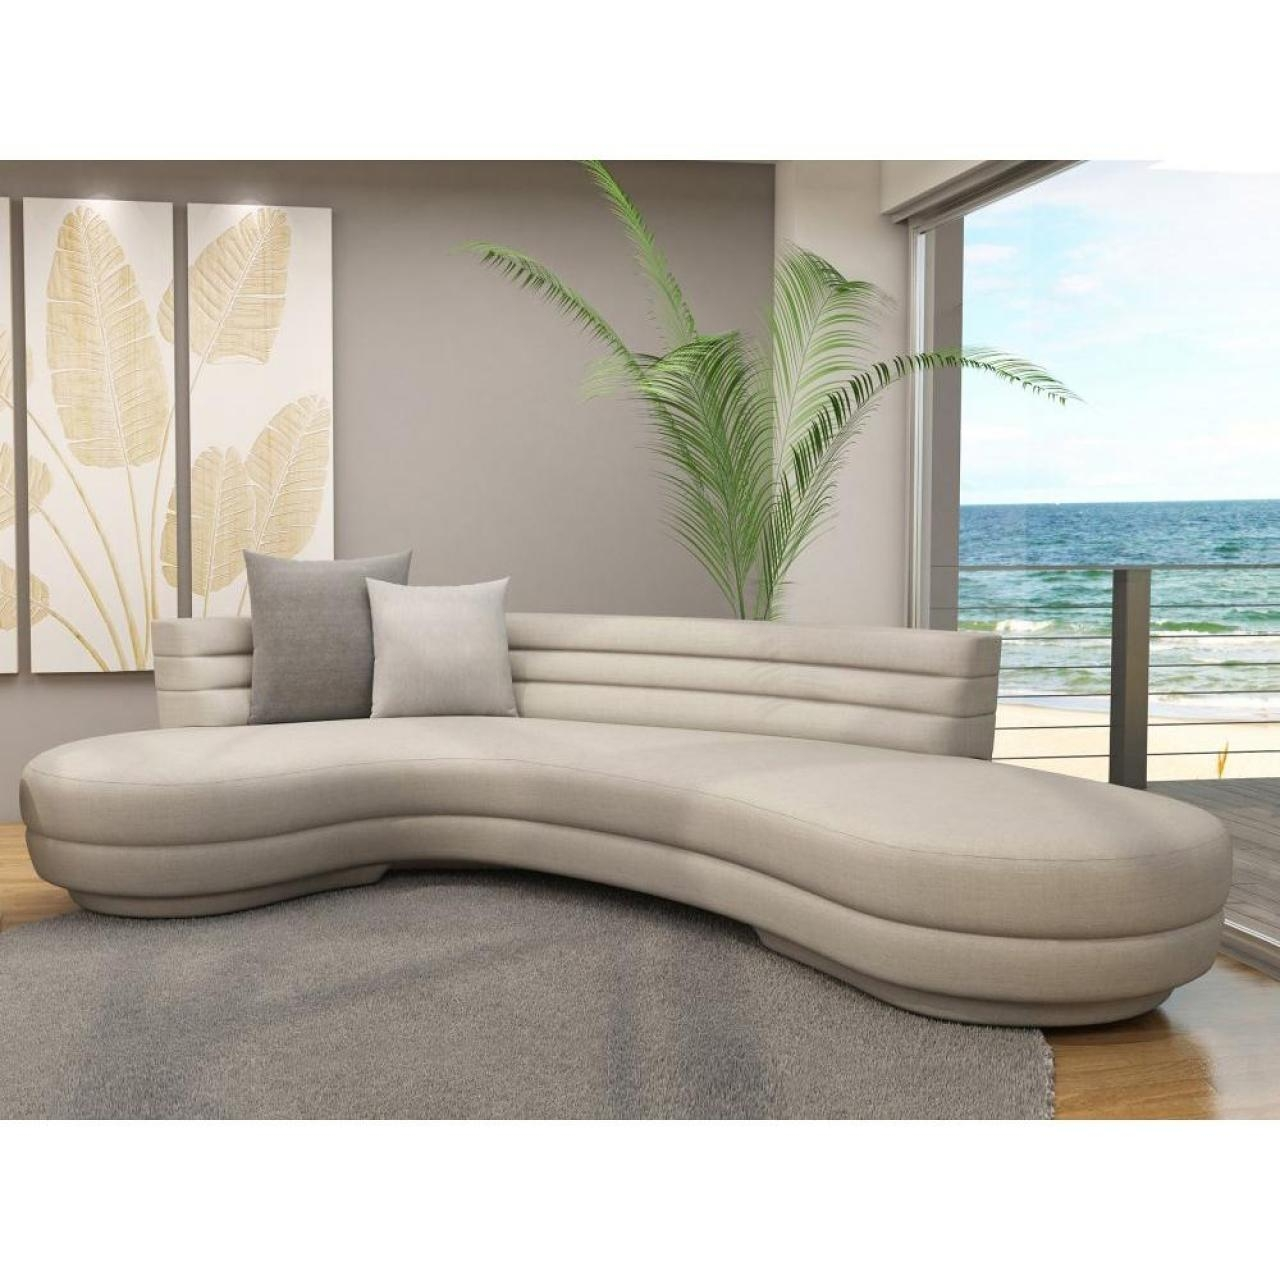 Beautiful Round Sectional Sofas – Sectional Sofas And Couches Throughout Round Sectional Sofa (Image 1 of 20)